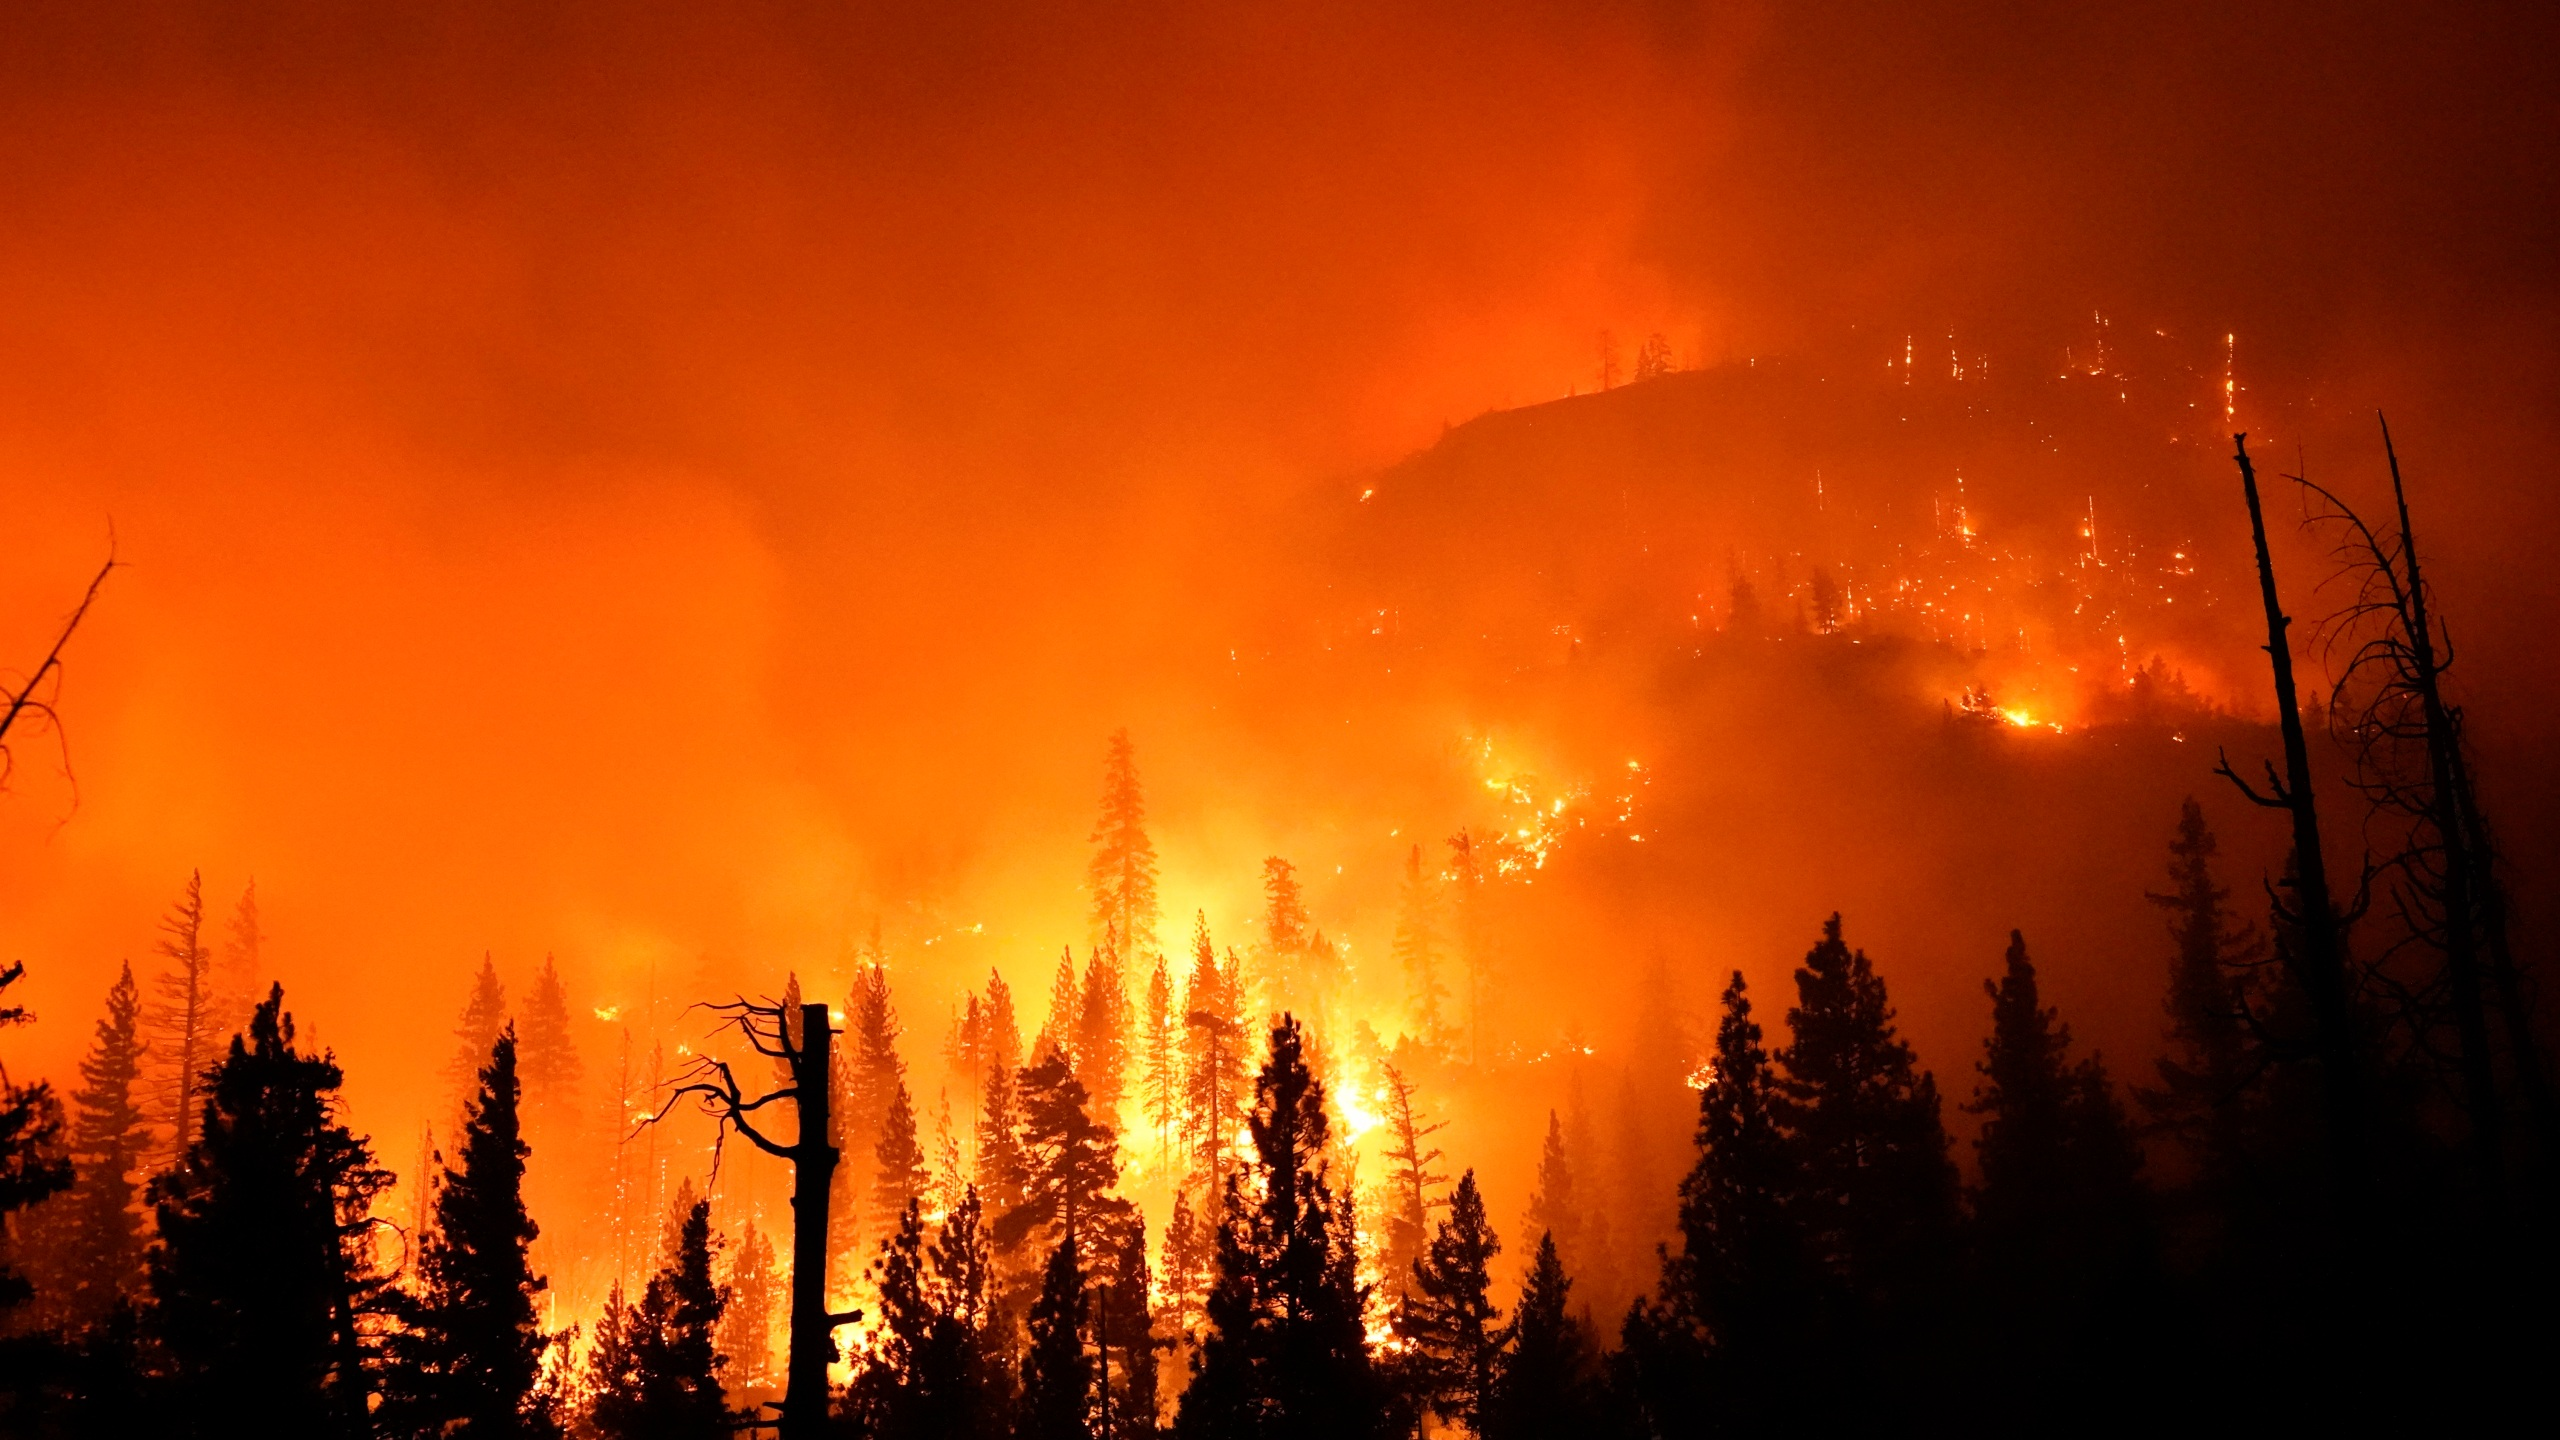 In this Sept. 6, 2020, file photo, the Creek Fire burns in the Sierra National Forest near Big Creek, Calif. (AP Photo/Marcio Jose Sanchez, File)